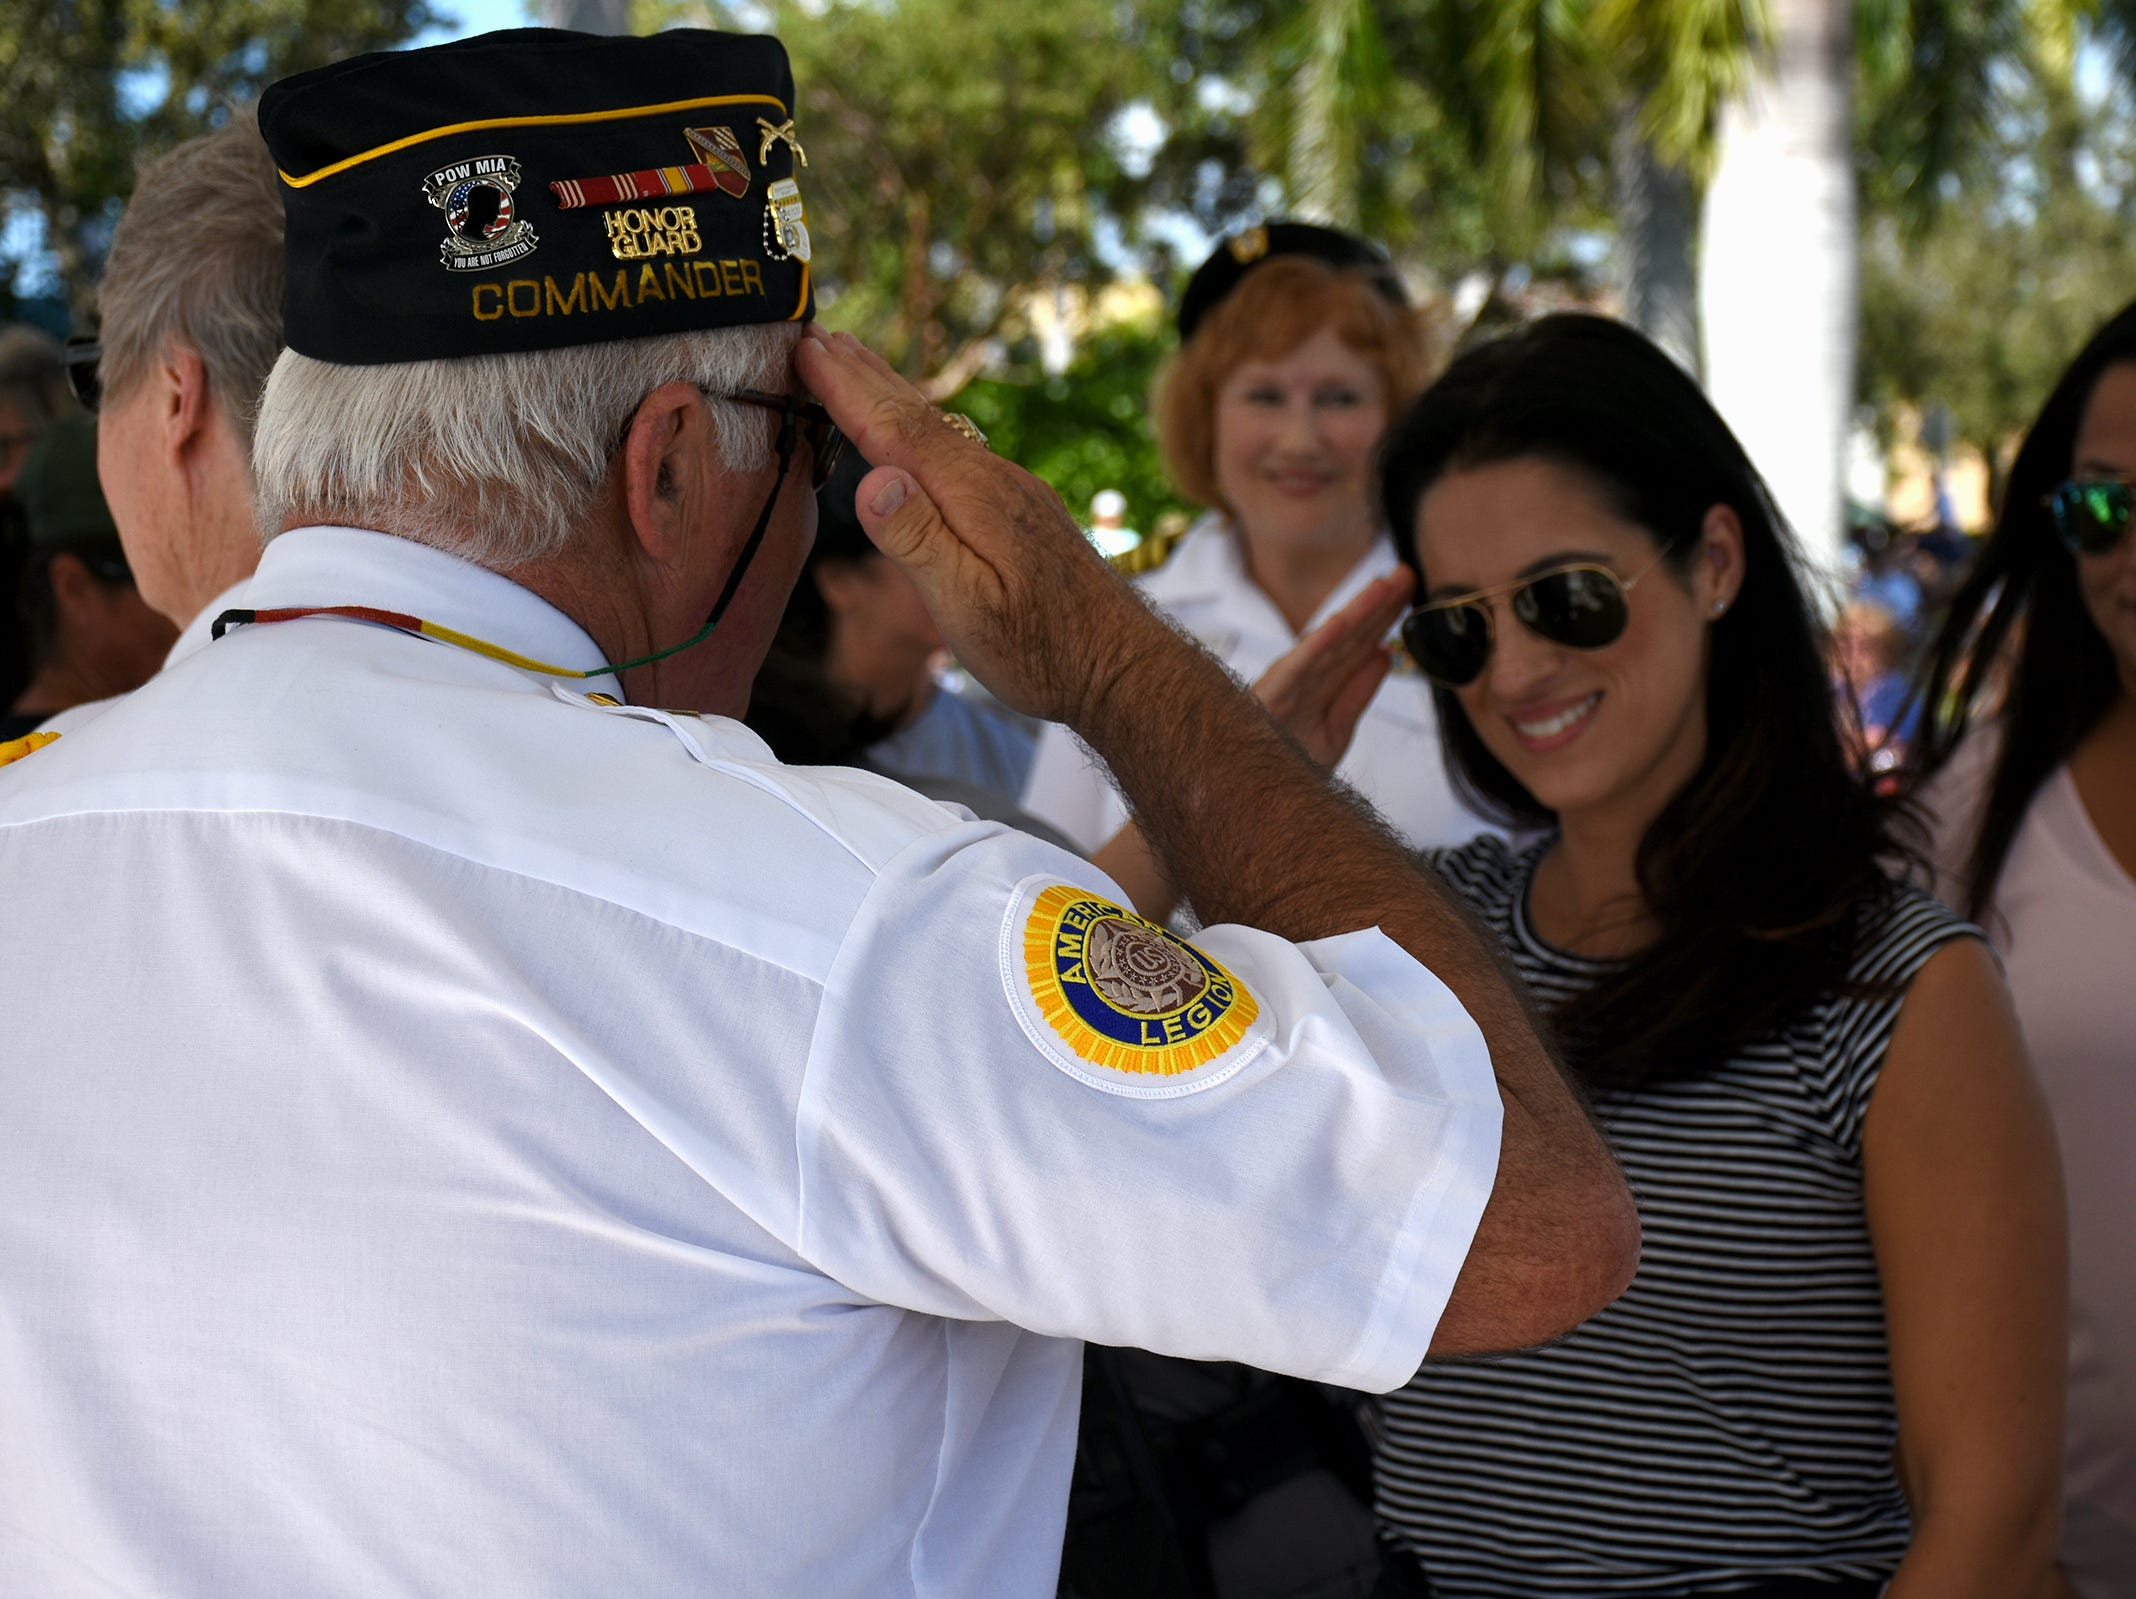 Marco Veterans Day observance focuses on 'women in the military'